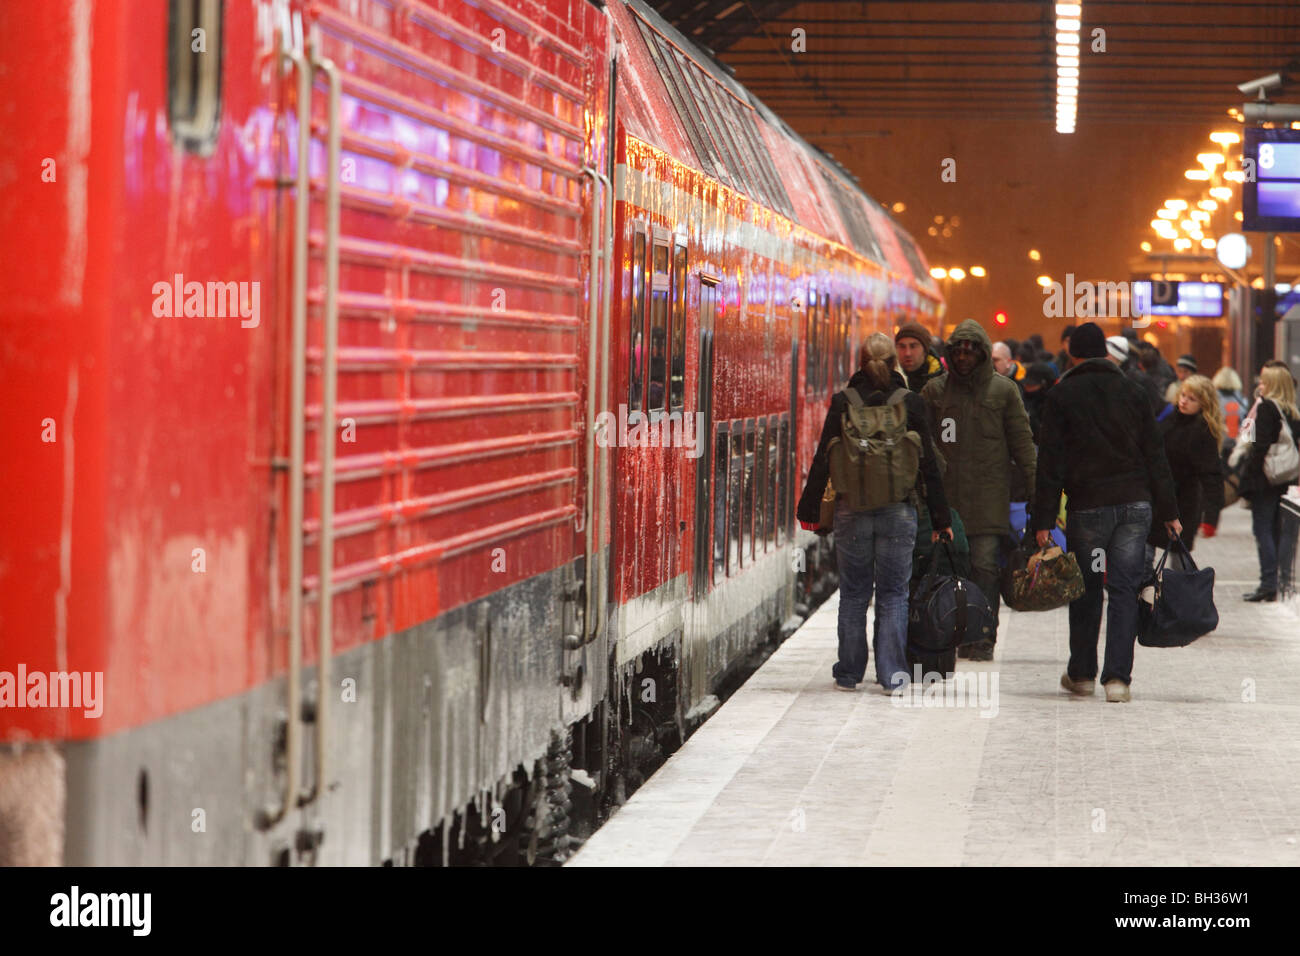 travelers boarding an icy train, winter conditions on the roofed station platforms - Stock Image